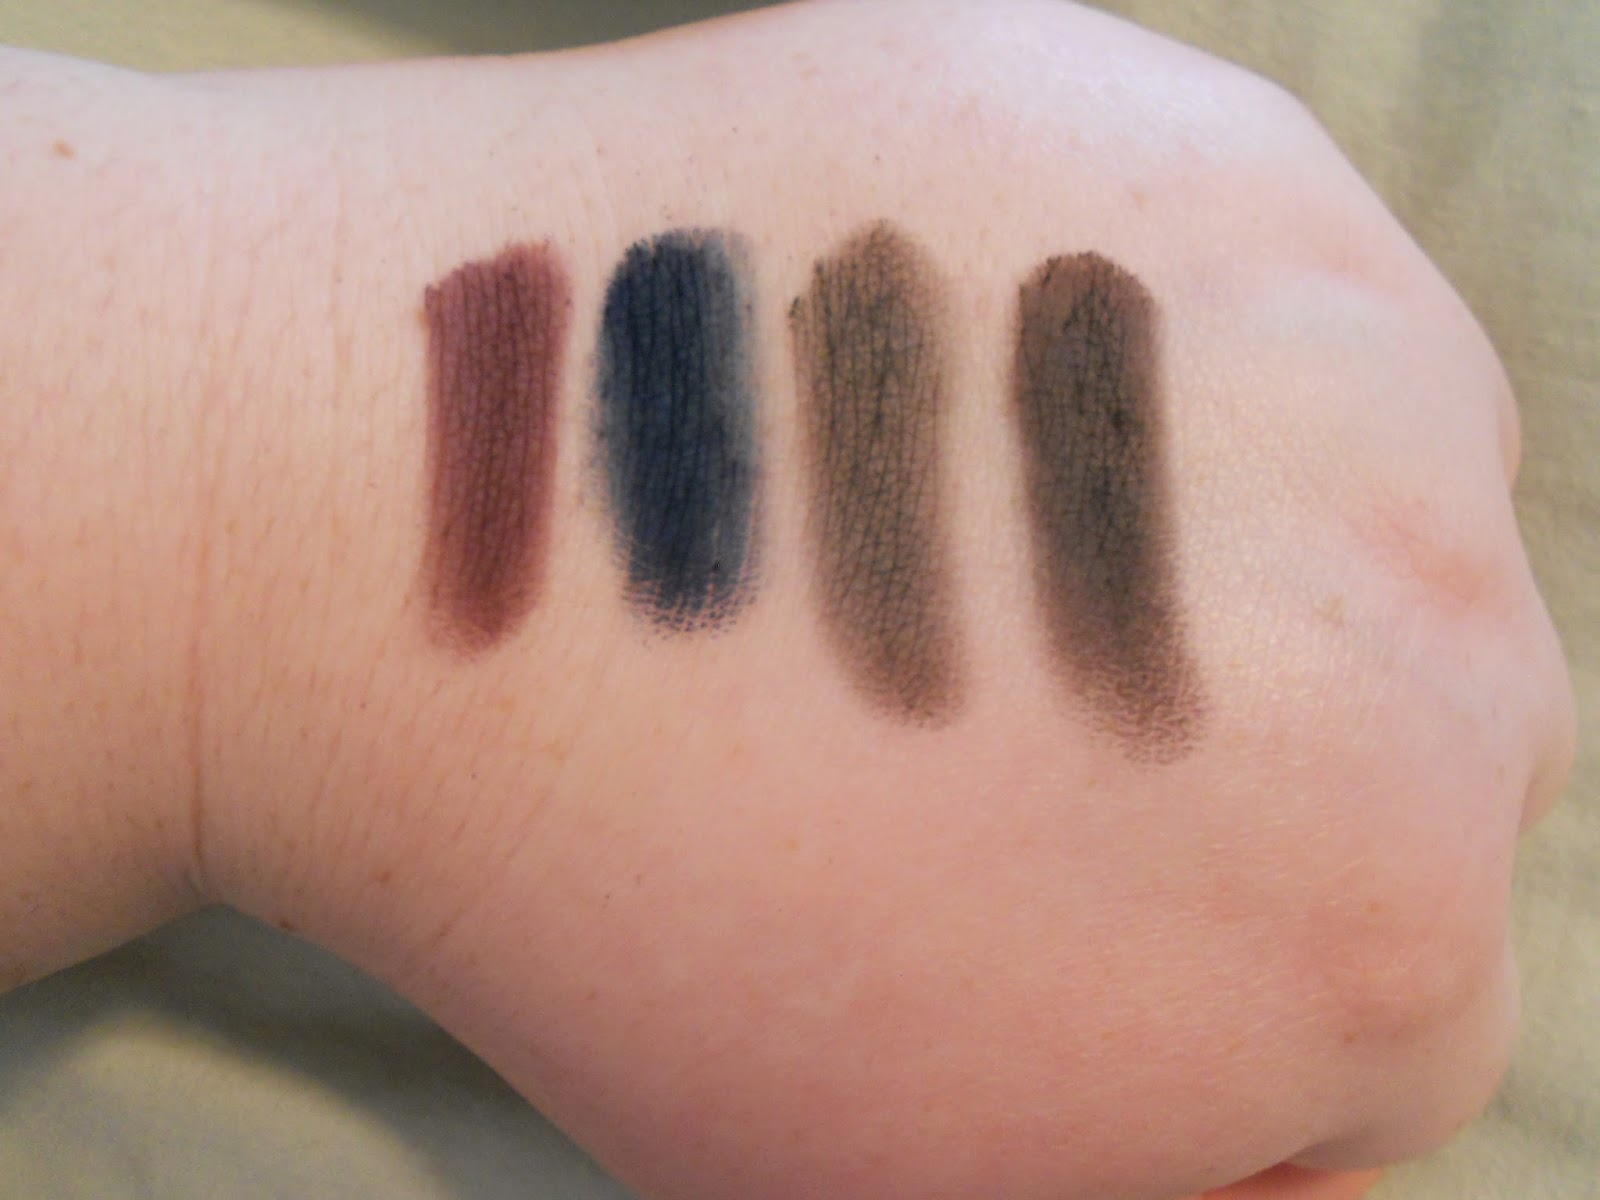 Lorac PRO Palette 2 Swatches - Plum, Navy, Charcoal and Black